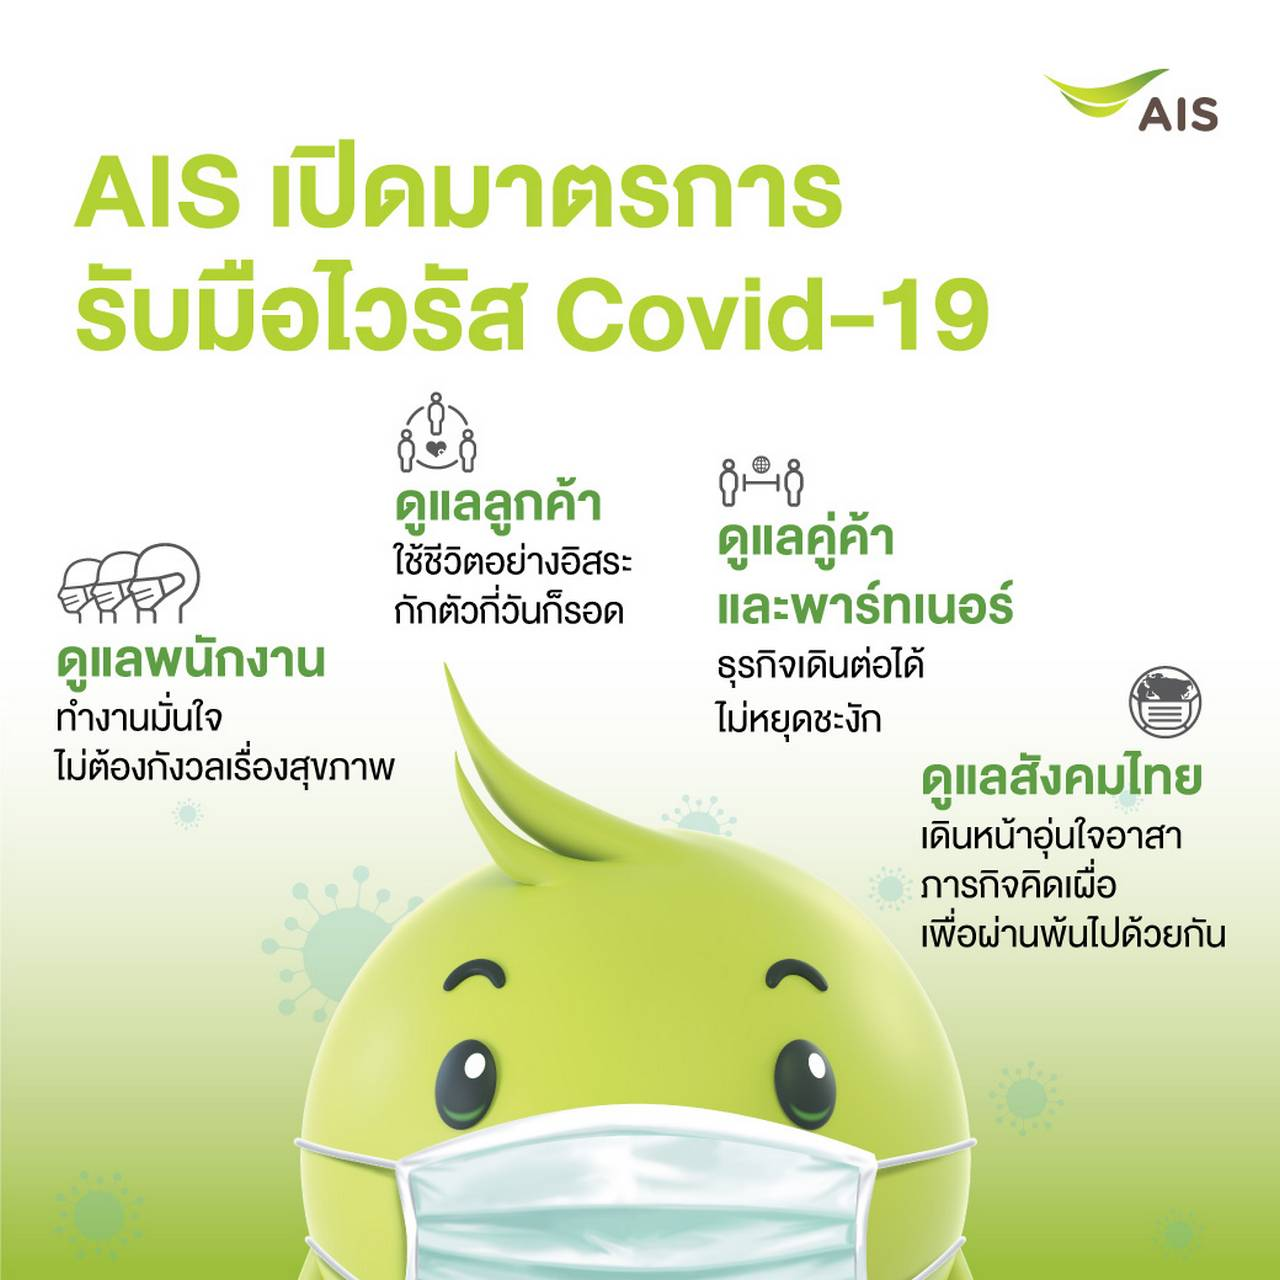 AIS announced more intense measures to deal with the COVID-19 virus outbreak.